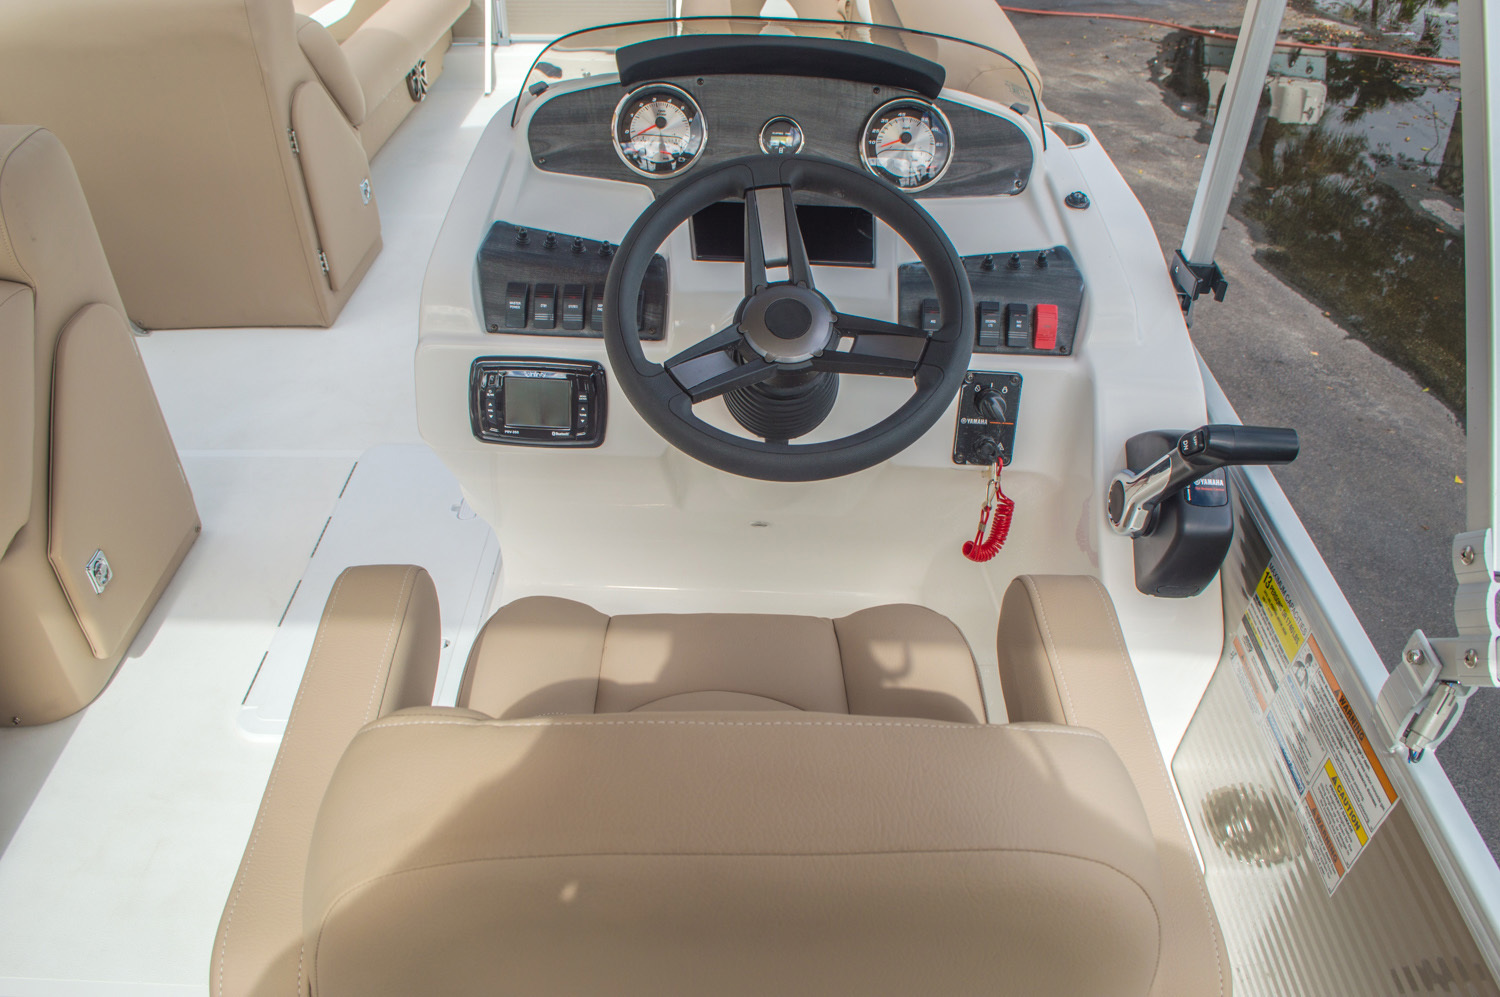 Thumbnail 28 for New 2016 Hurricane FunDeck FD 226 OB boat for sale in Vero Beach, FL